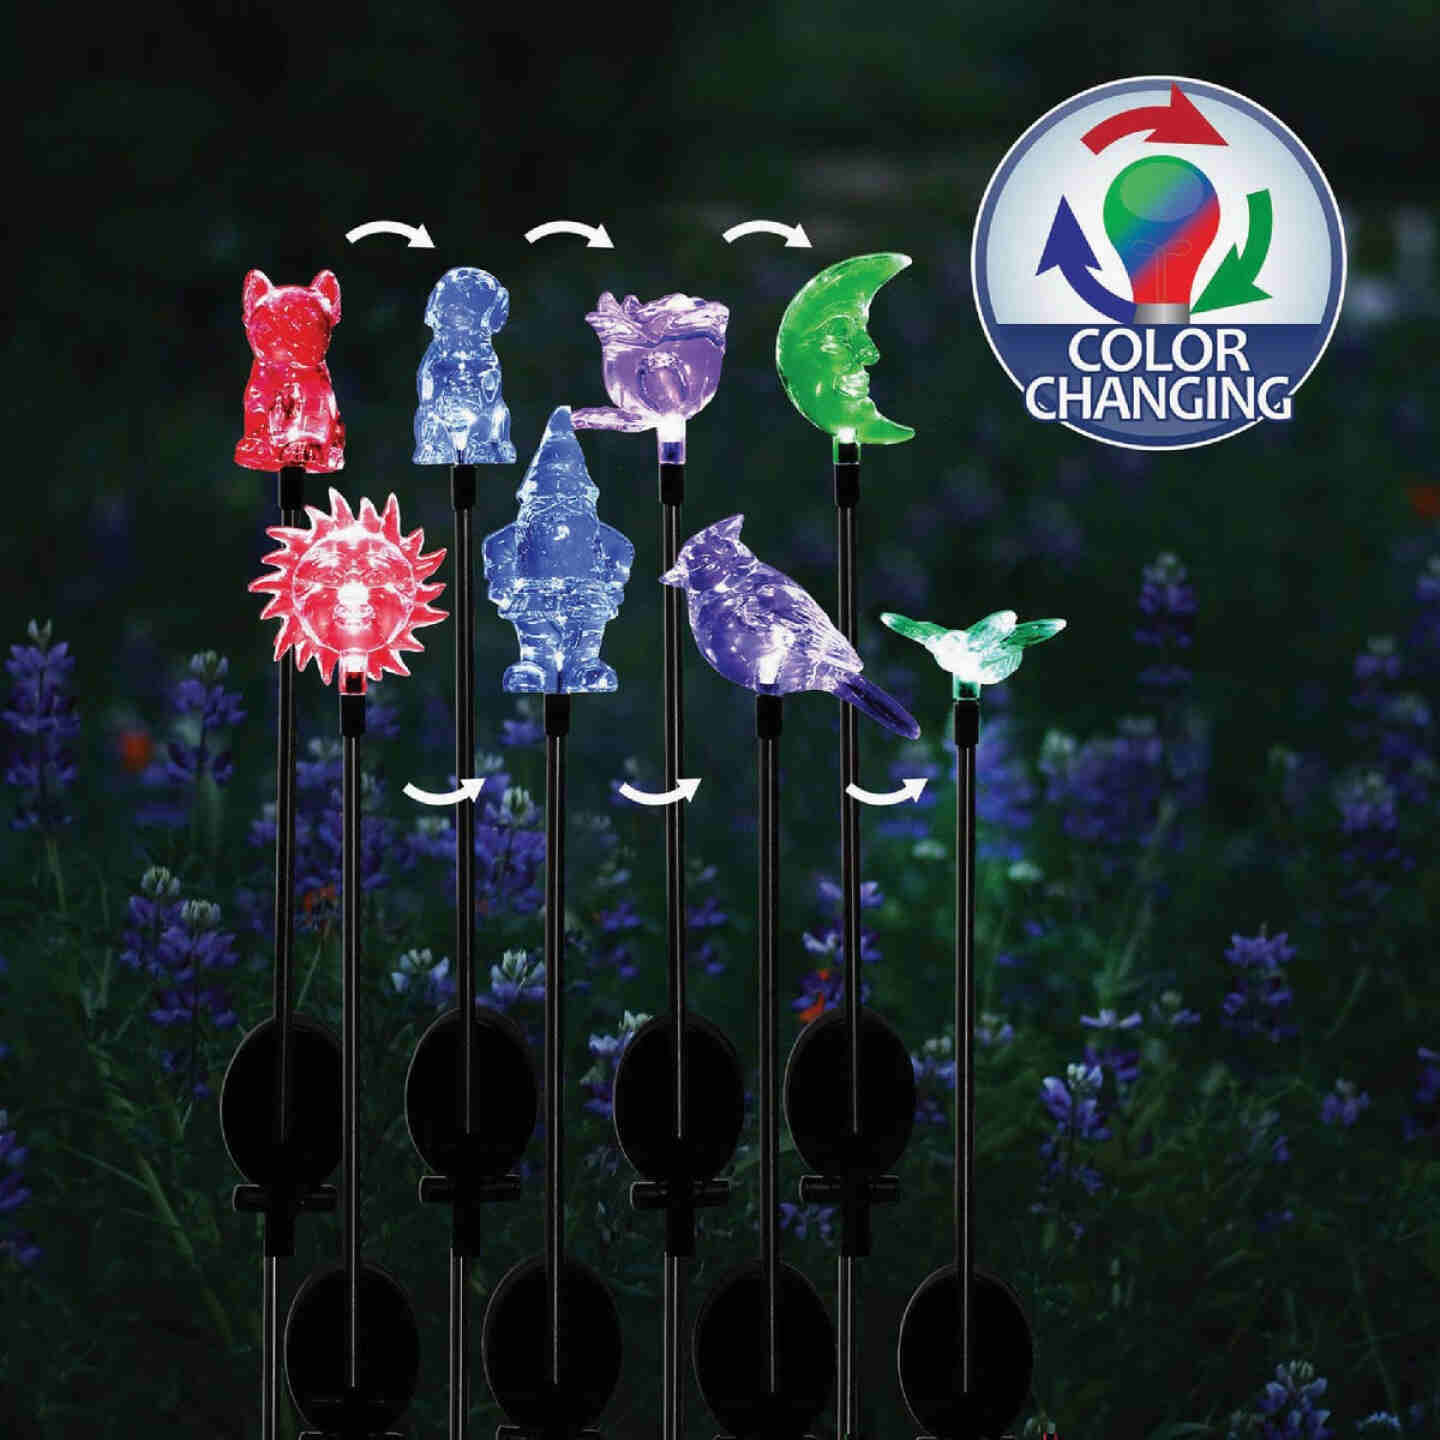 Alpine Plastic 30 In. H. Color Changing LED Solar Stake Light Image 2